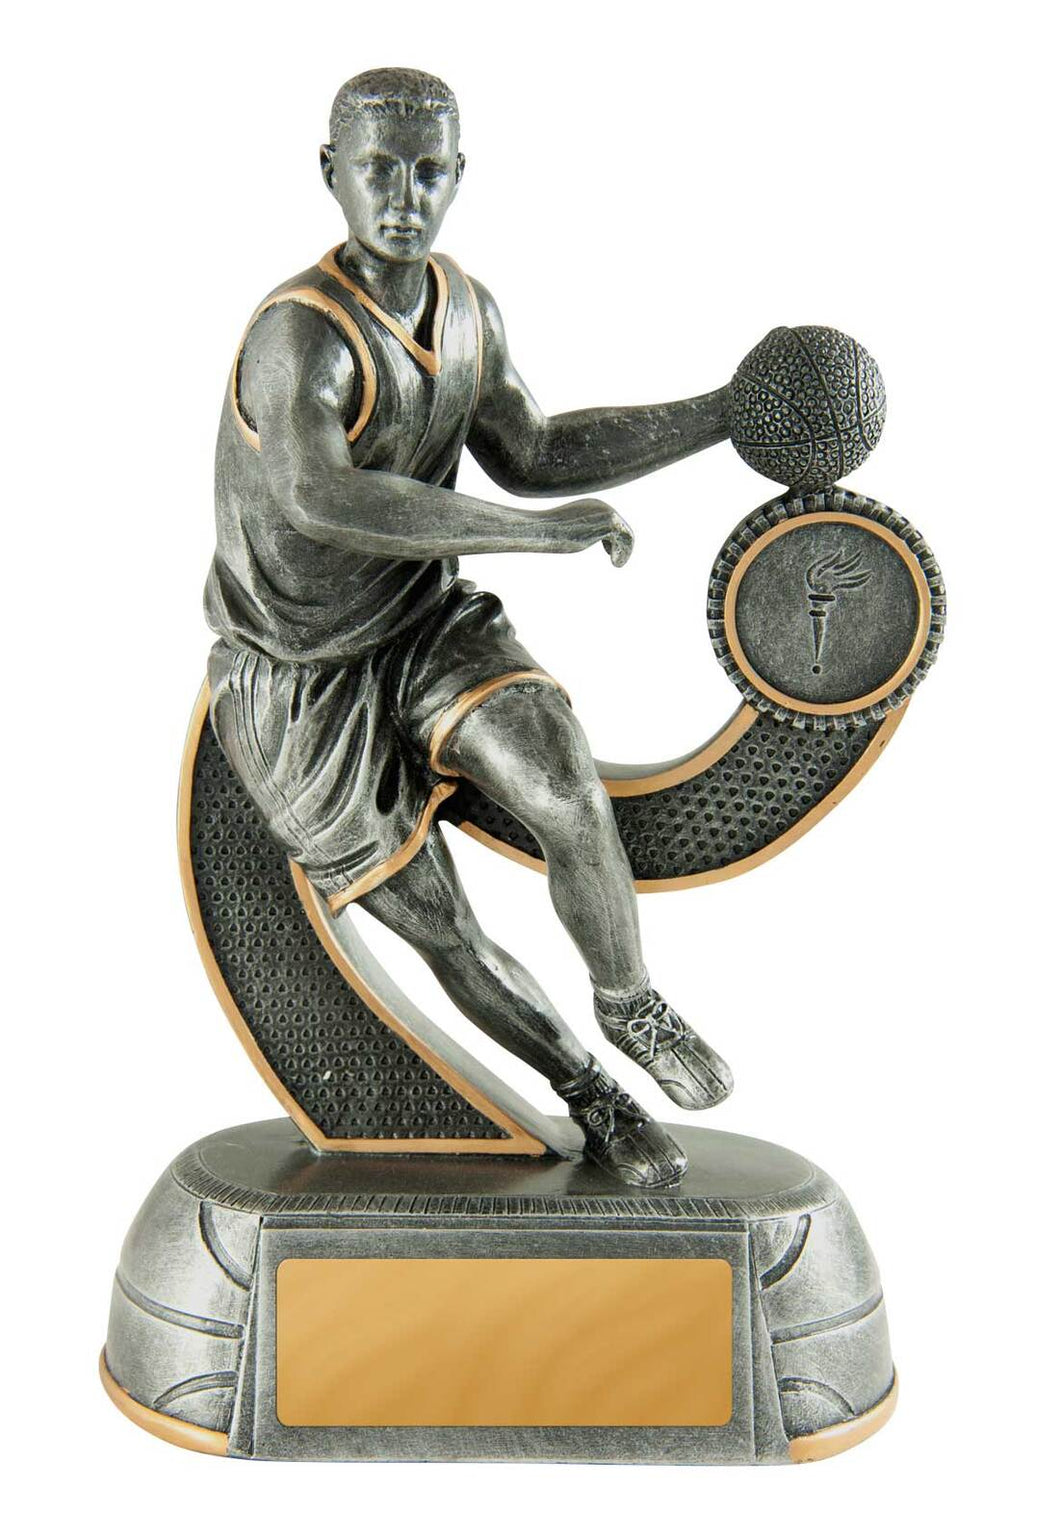 658-7MD Megastar Basketball Series of Trophies, in Silver Resin with Gold Trim - Male Silver & Gold Resin  4 Sizes:  125mm / 150mm / 175mm / 200mm available, Engraving & Club logo included